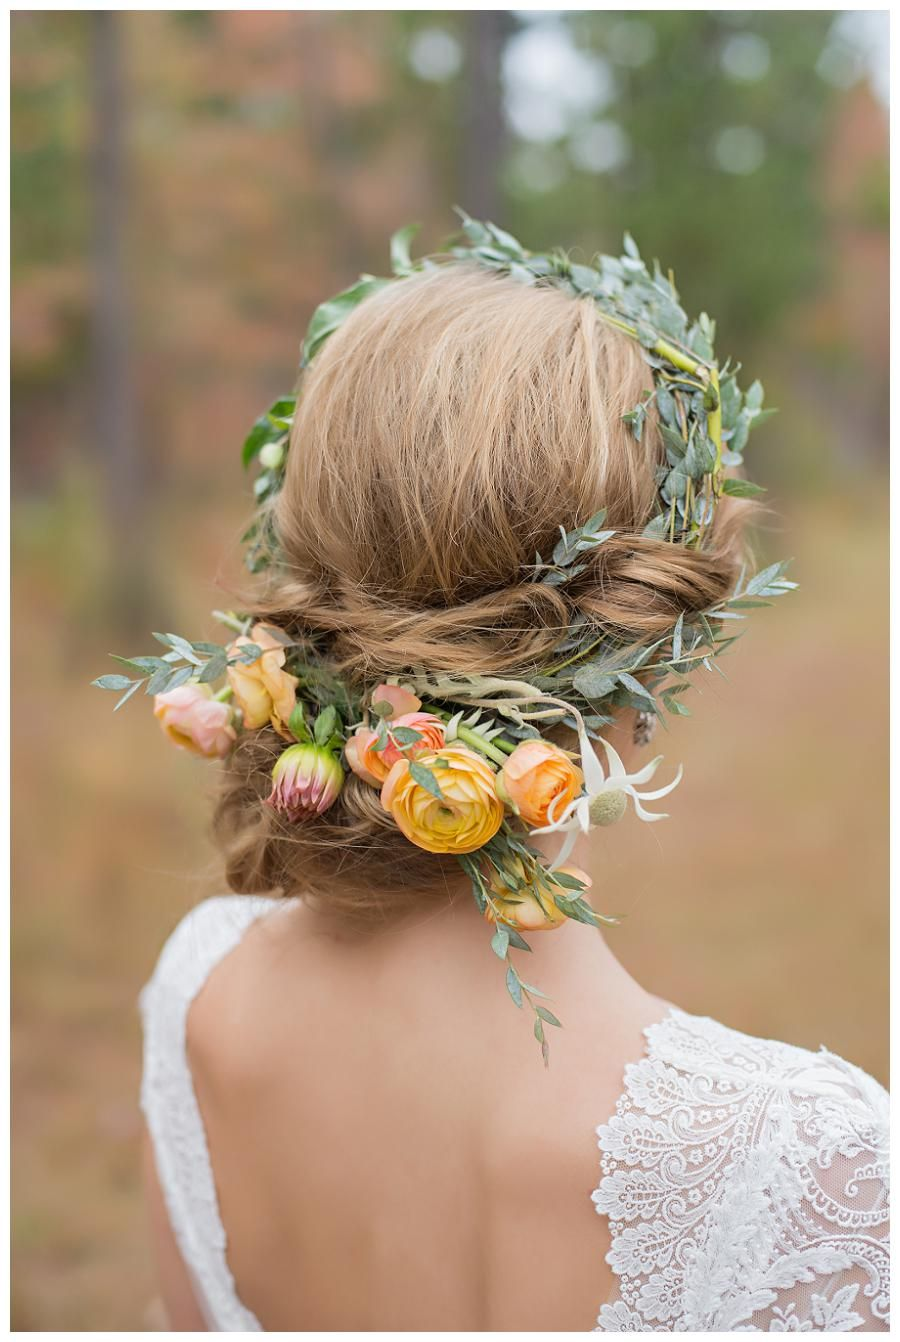 Floral crown by thorne thistle image by heather durham floral crown by thorne thistle image by heather durham photography izmirmasajfo